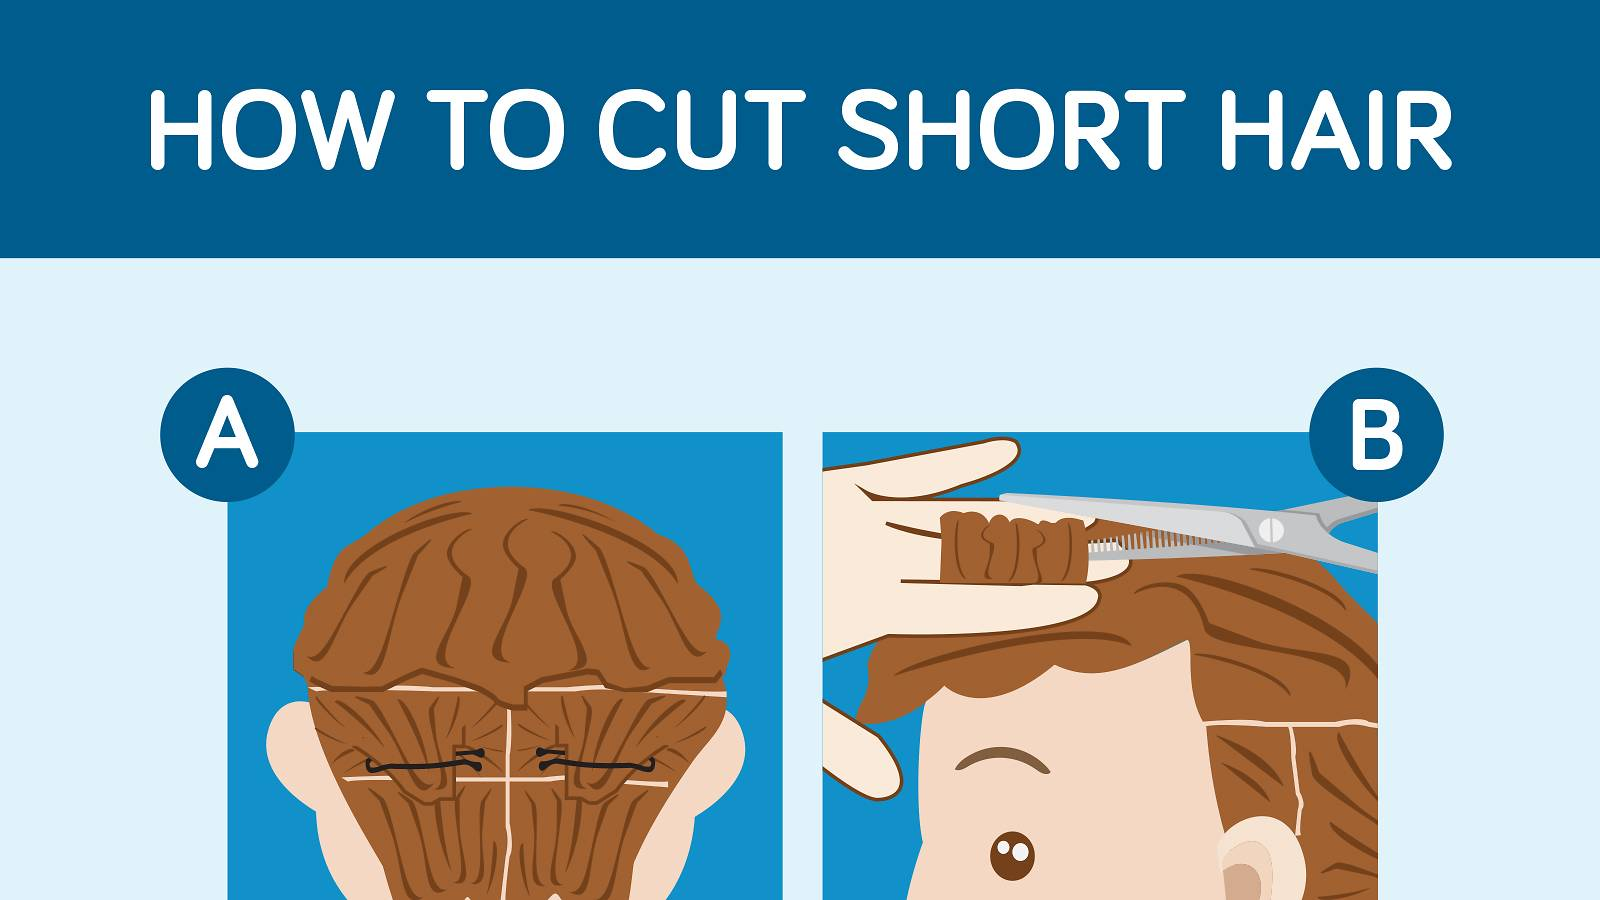 Tots-How-to-cut-your-toddler's-hair-yourself-[Infographic]_02